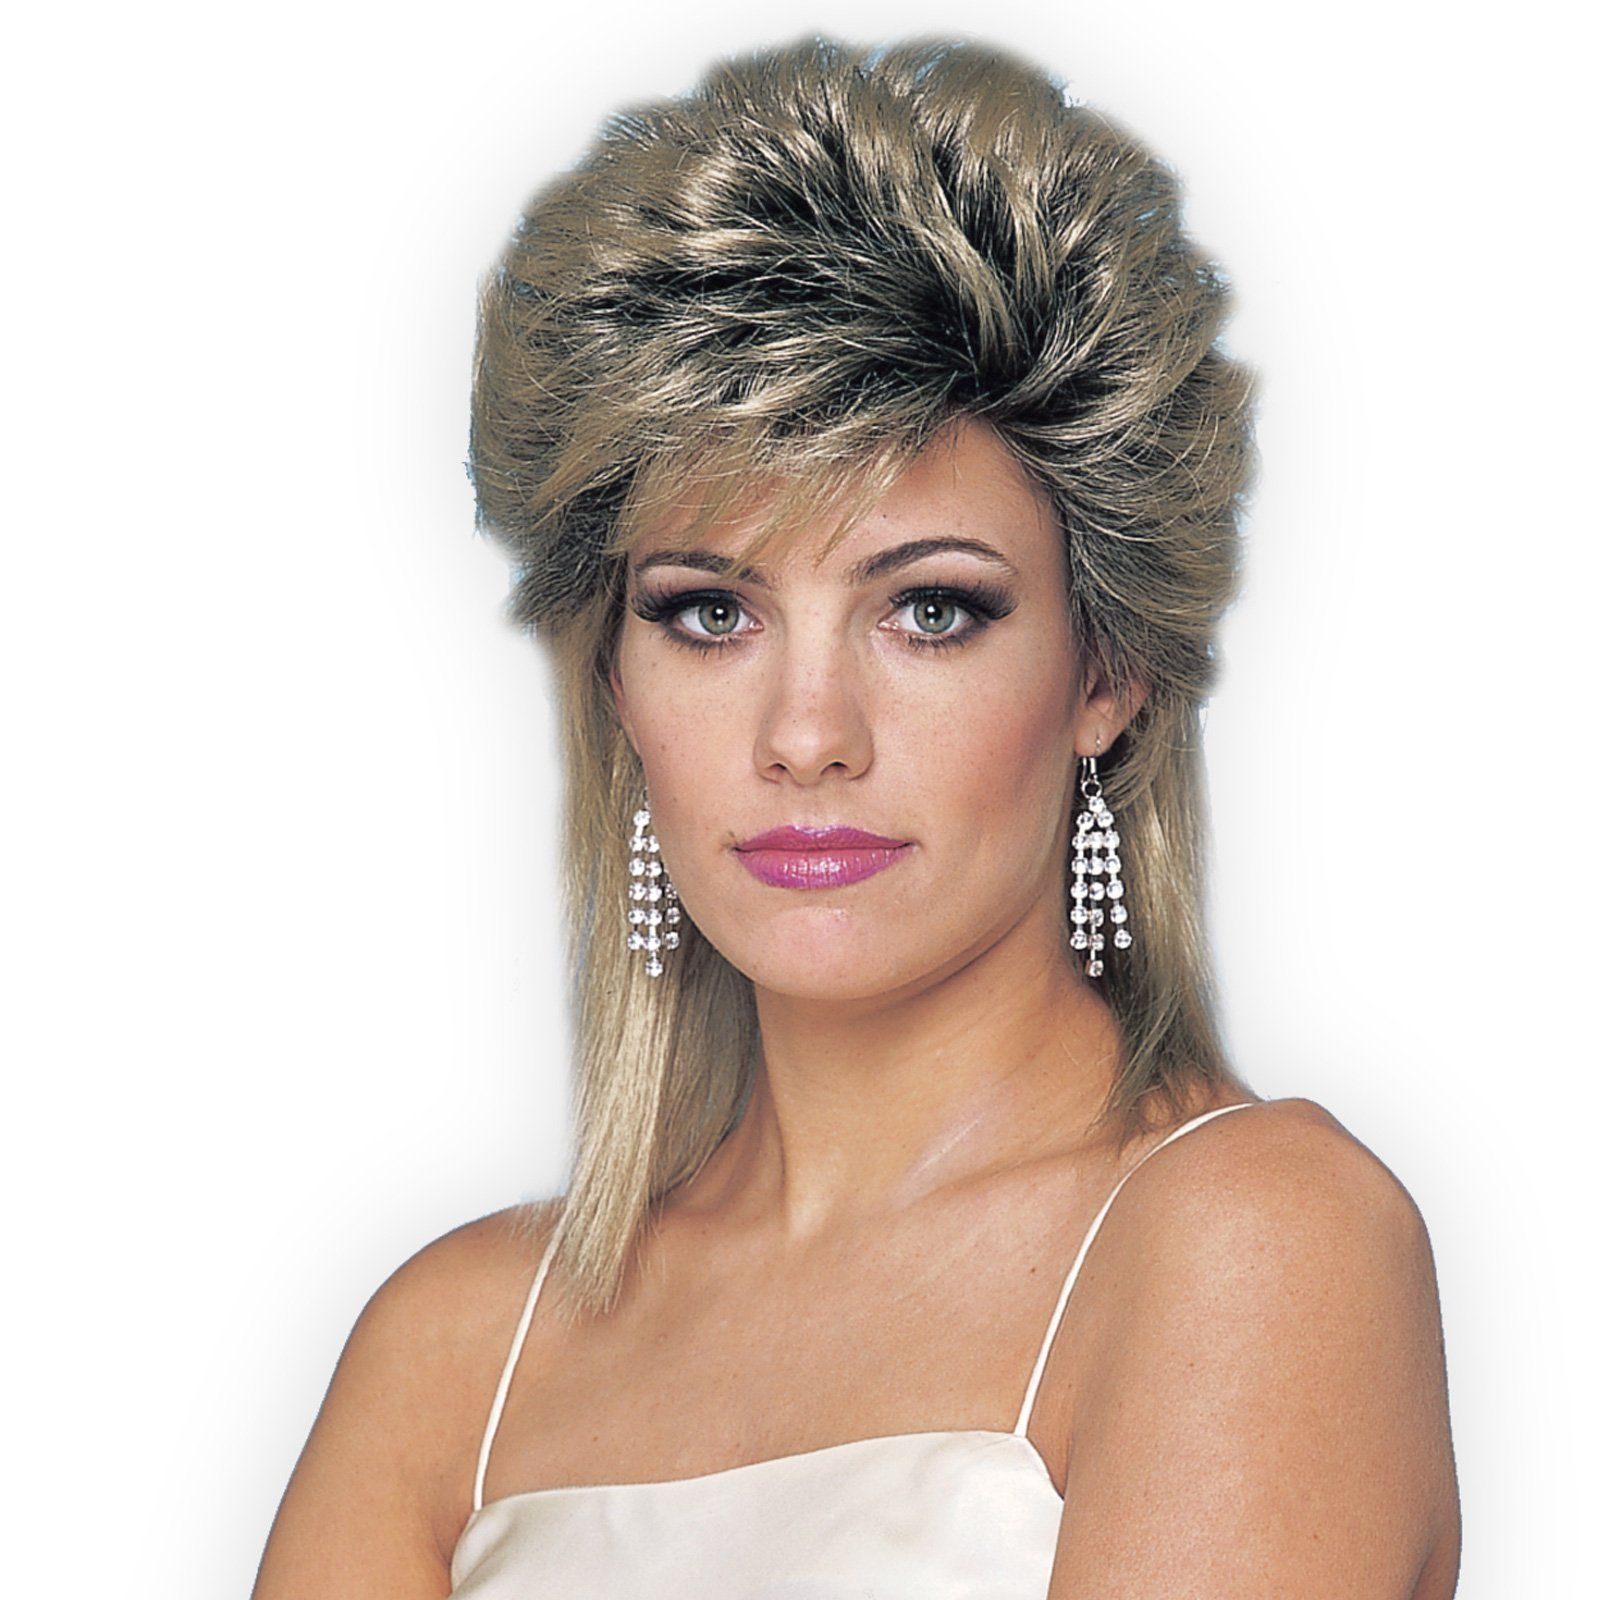 disco hair style disco hairstyles for the 80s 80 s style 5714 | c2574a3518c4d288b9208a2426131a5d